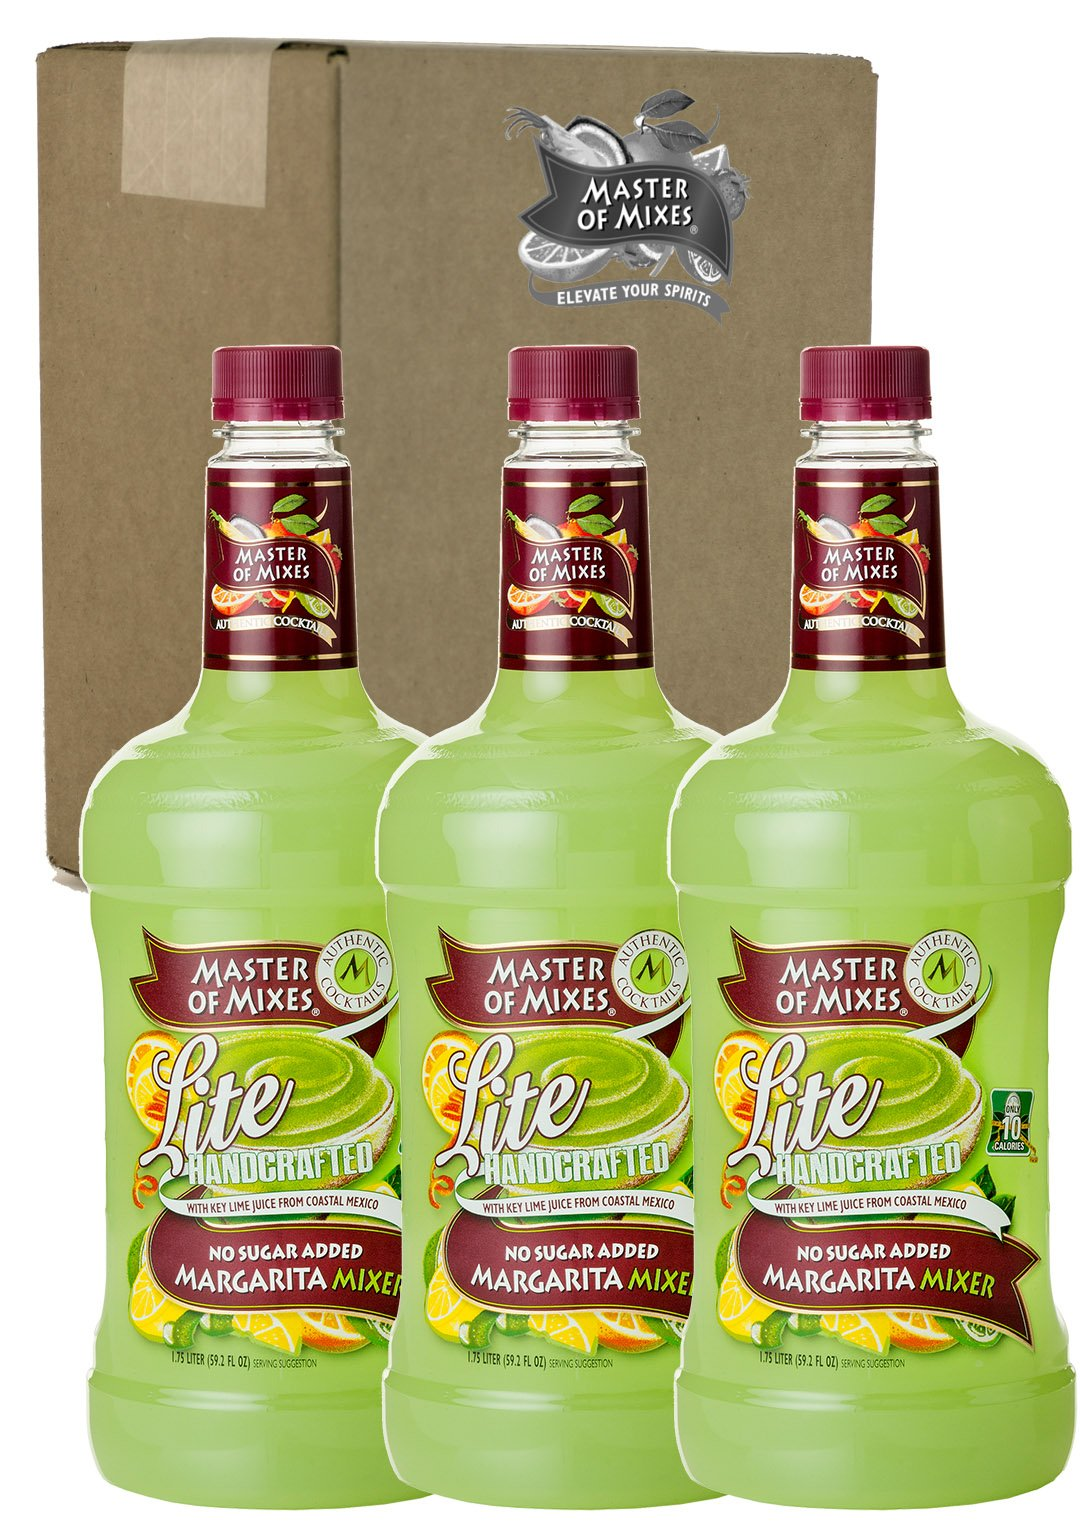 Master of Mixes Margarita Lite Drink Mix, Ready To Use, 1.75 Liter Bottle (59.2 Fl Oz), Pack of 3